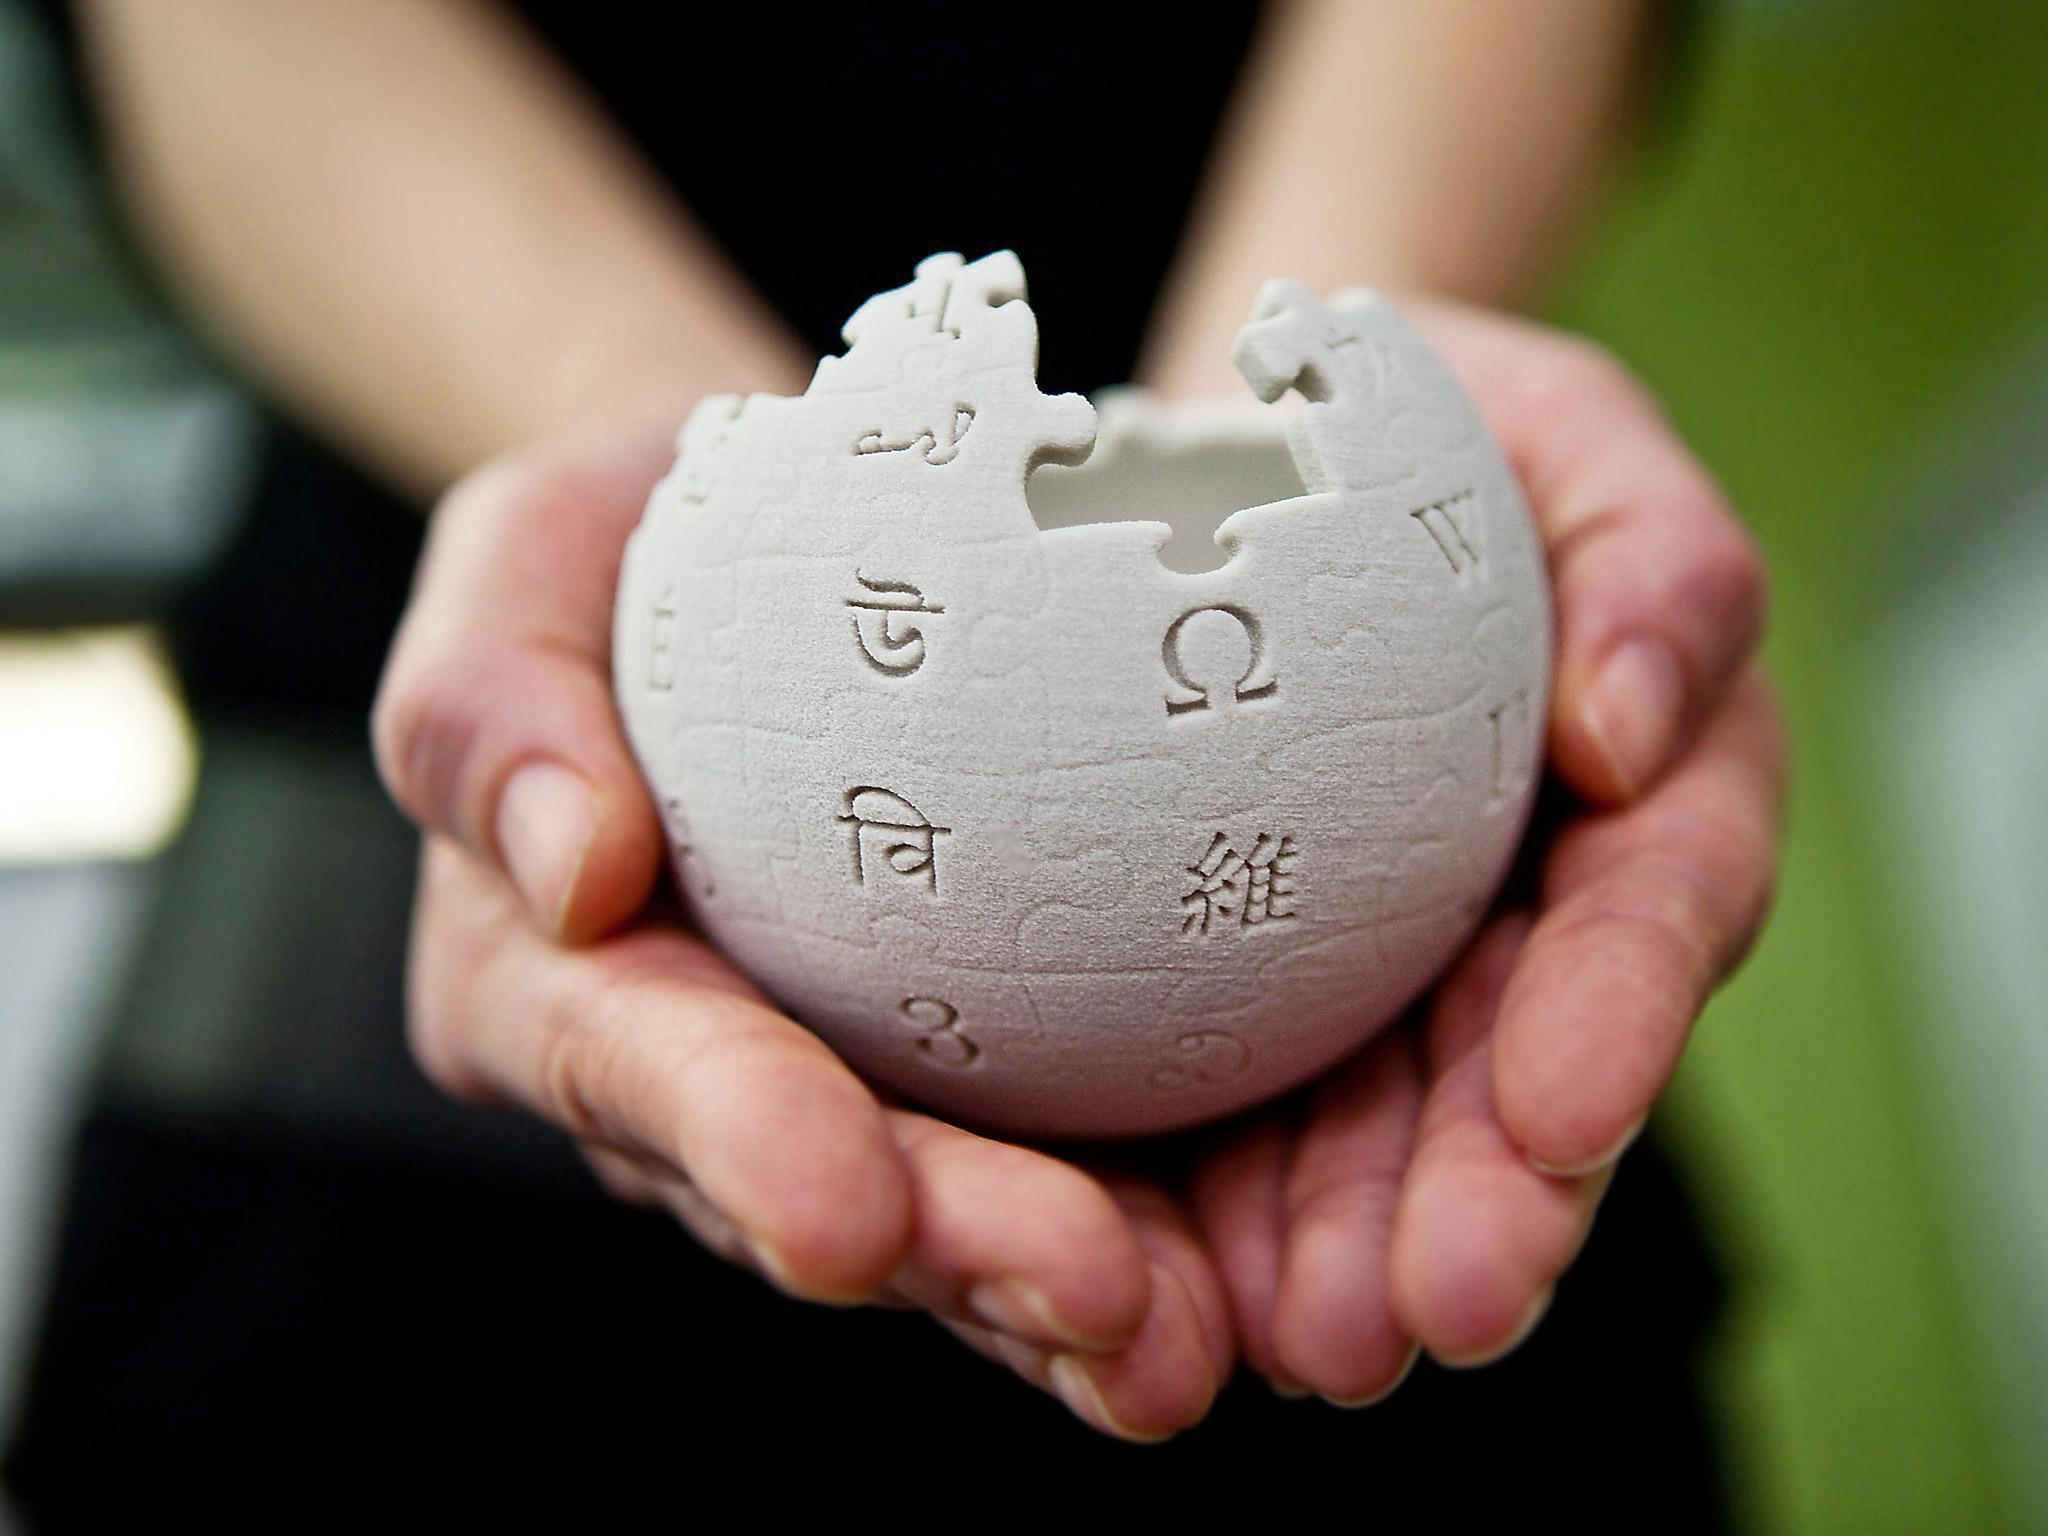 Wikipedia as an important tool for documenting human rights violations